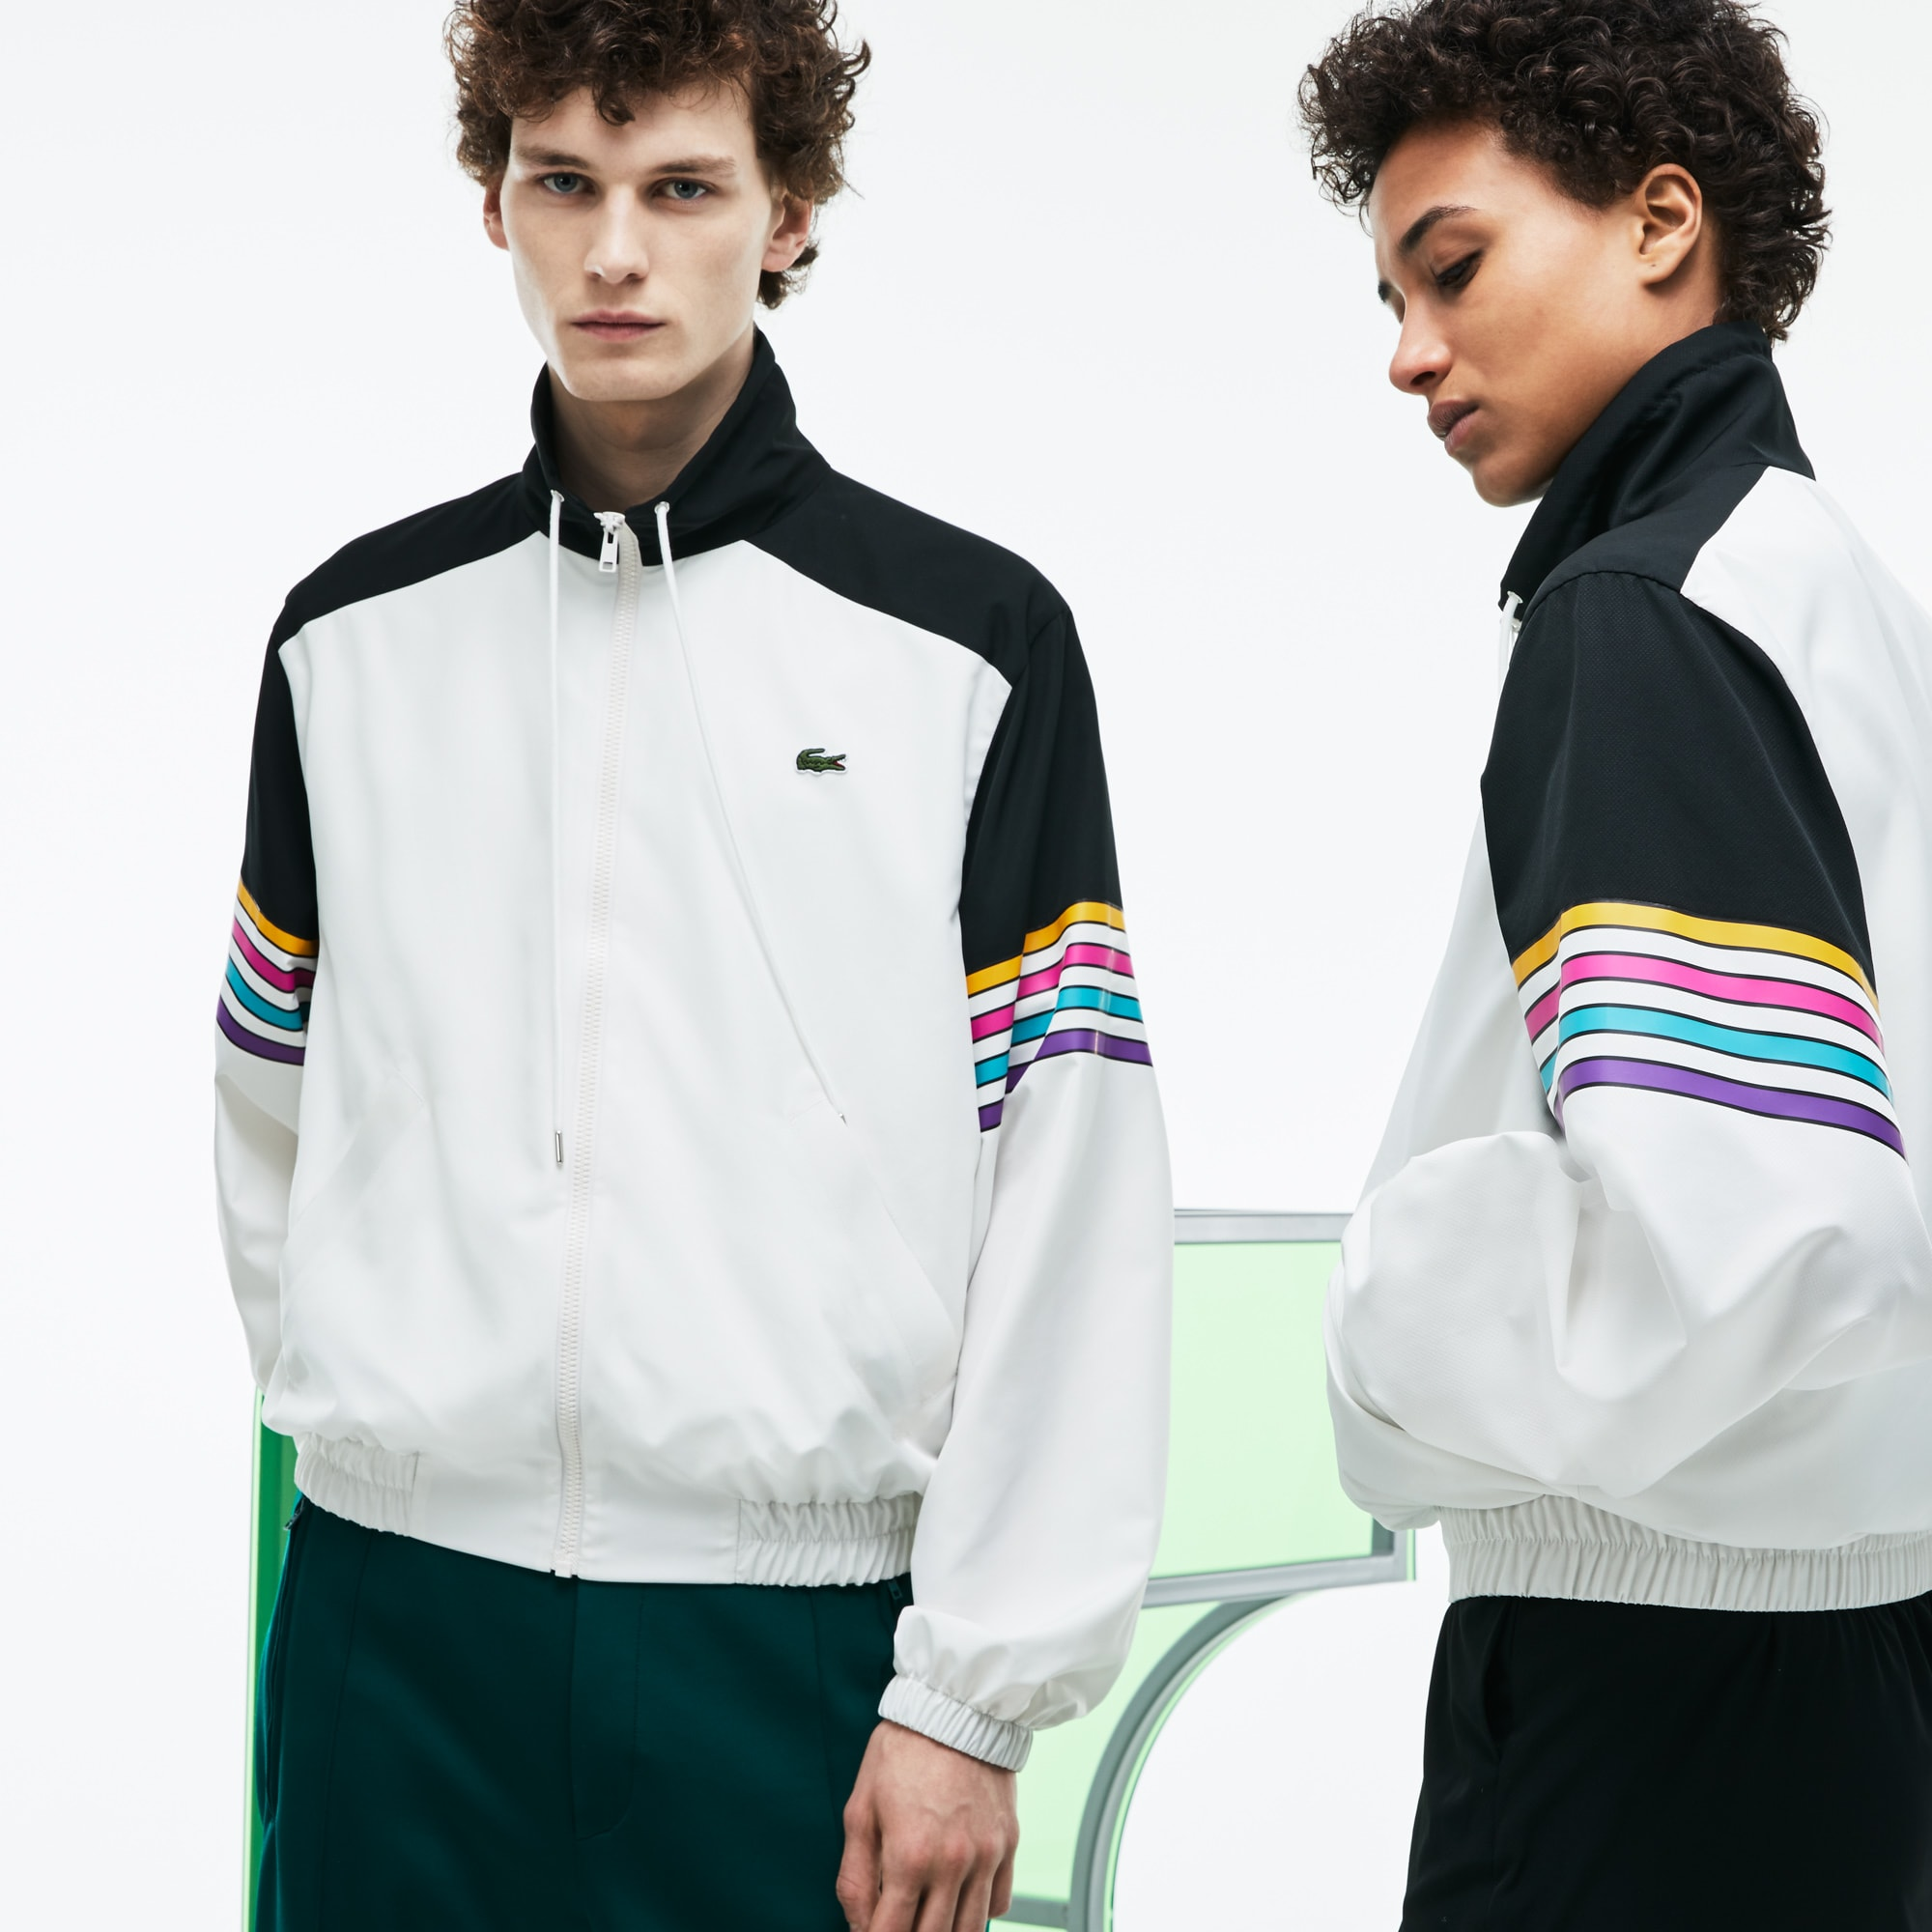 Unisex Fashion Show Colorblock Technical Canvas Zippered Jacket